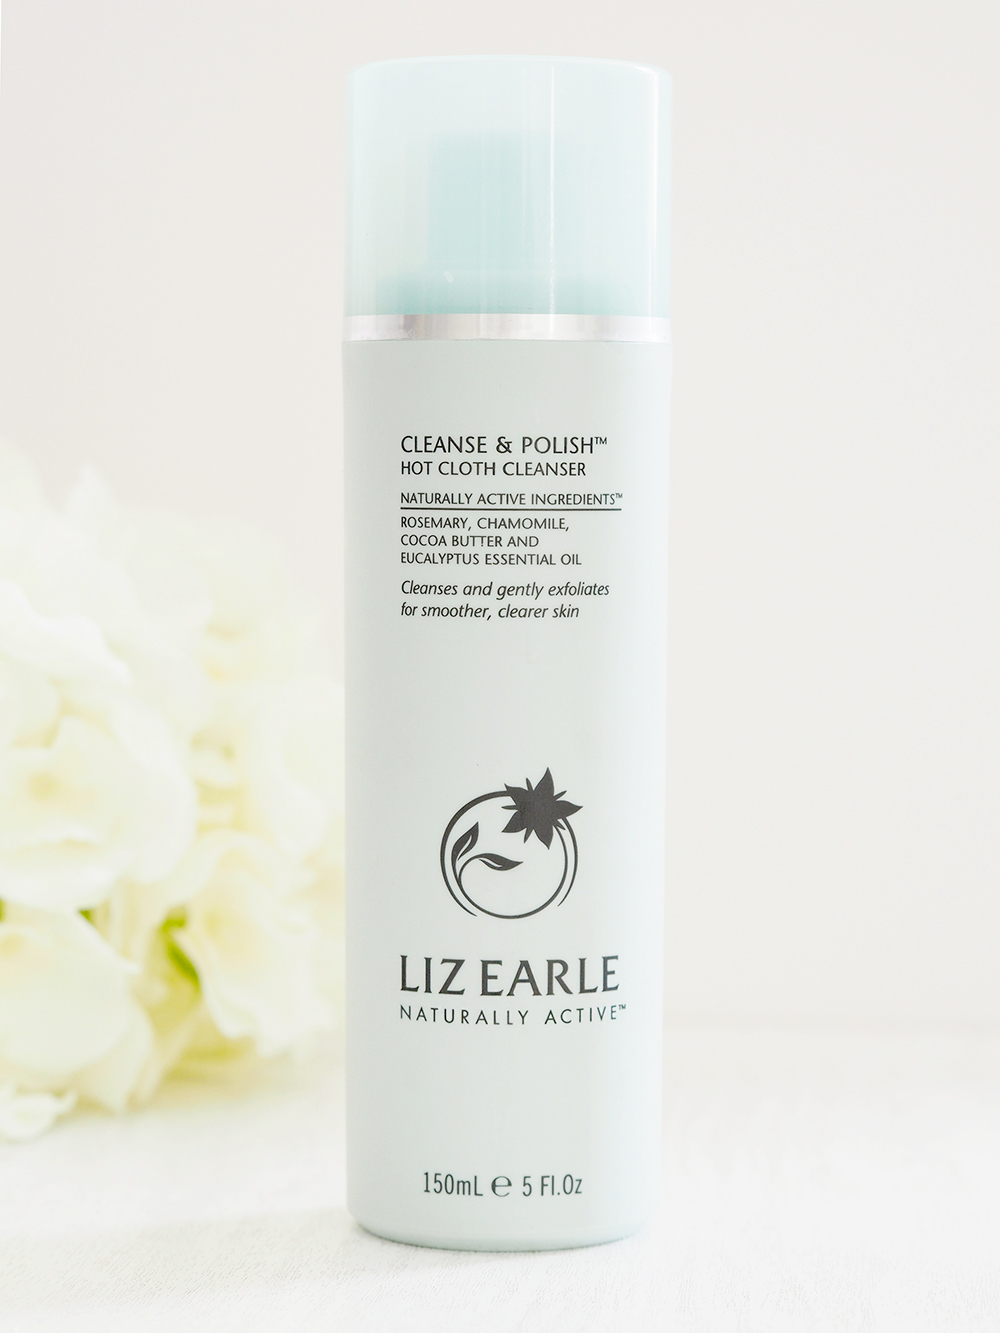 Liz Earle hot cloth cleanser review